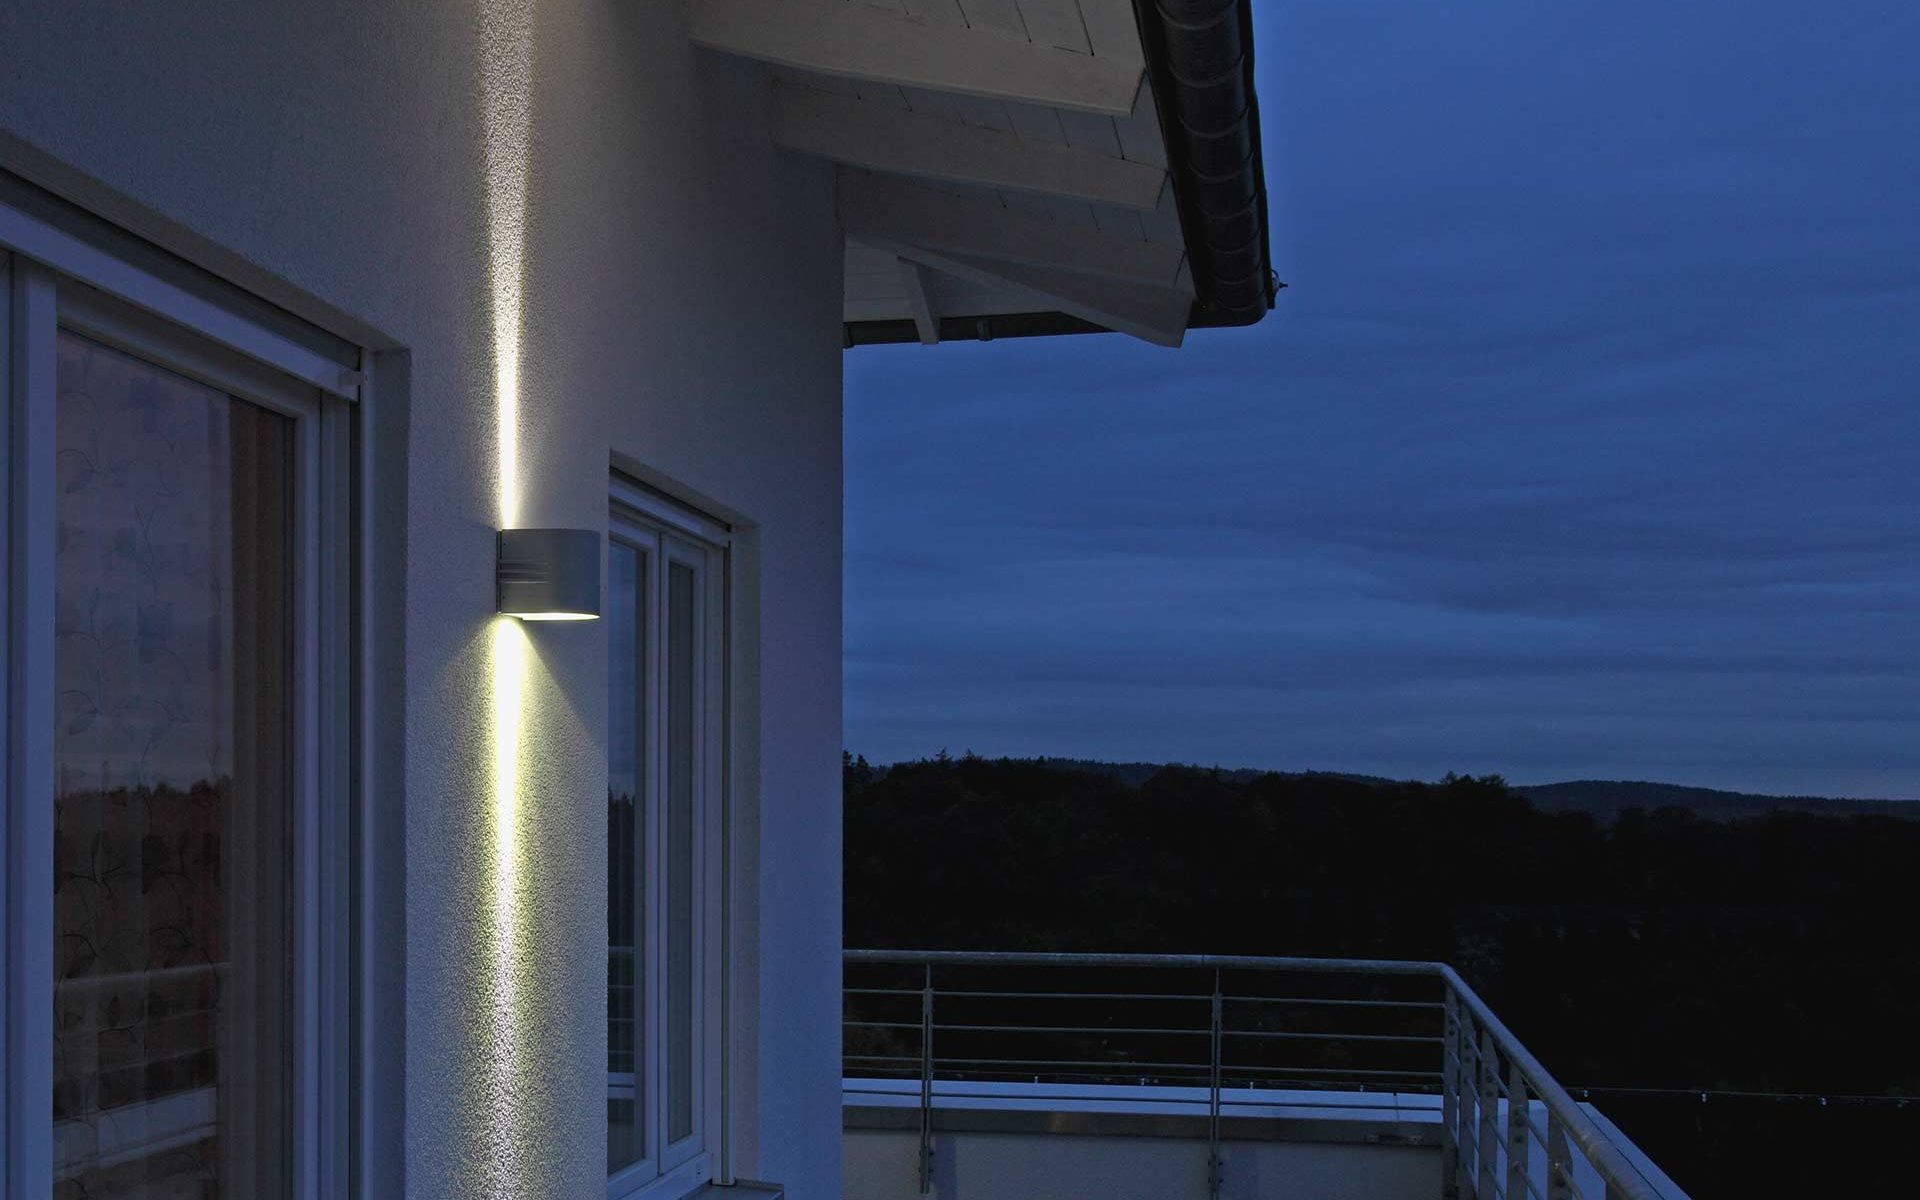 A wall lamp with double-sided light output stylishly sets off a balcony.